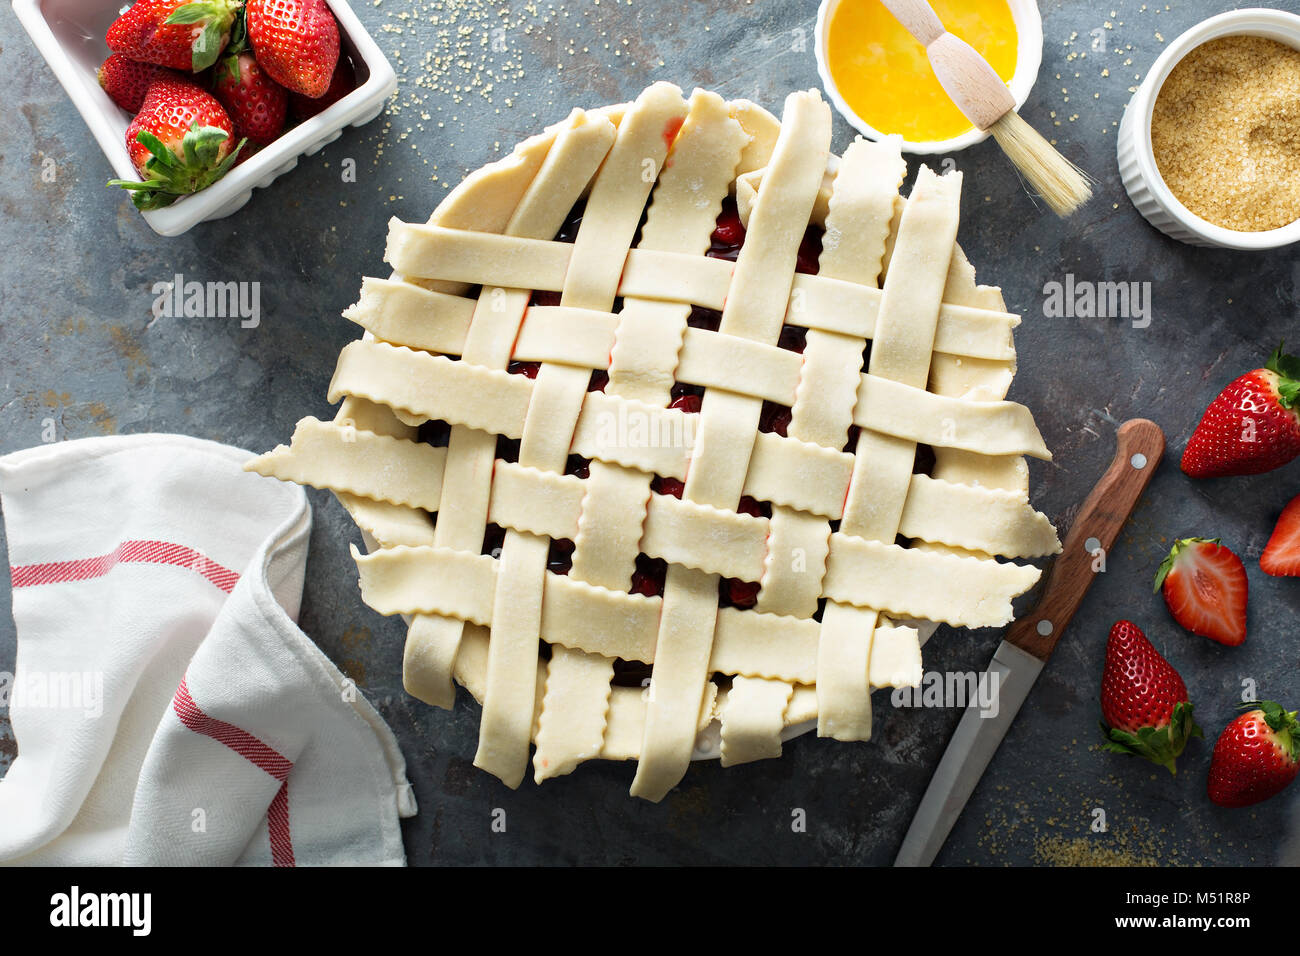 Making strawberry pie from scratch with homemade crust lattice and sweet filling - Stock Image